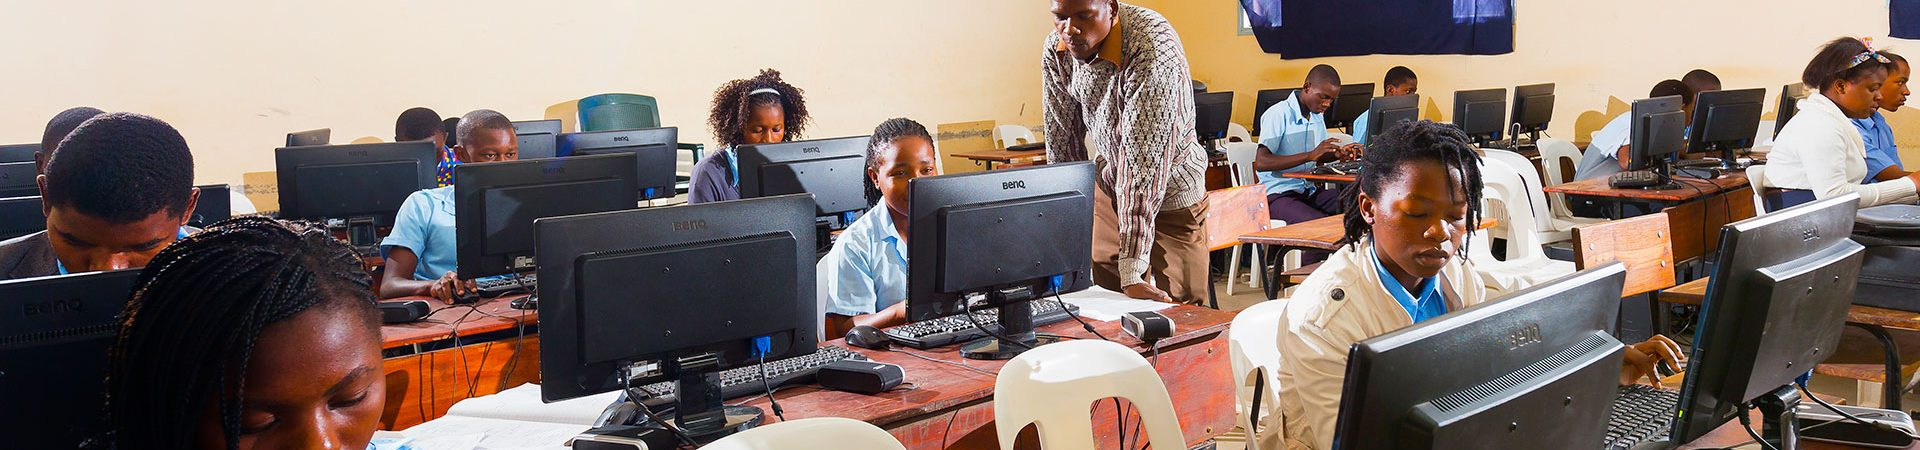 children seating in a computer class